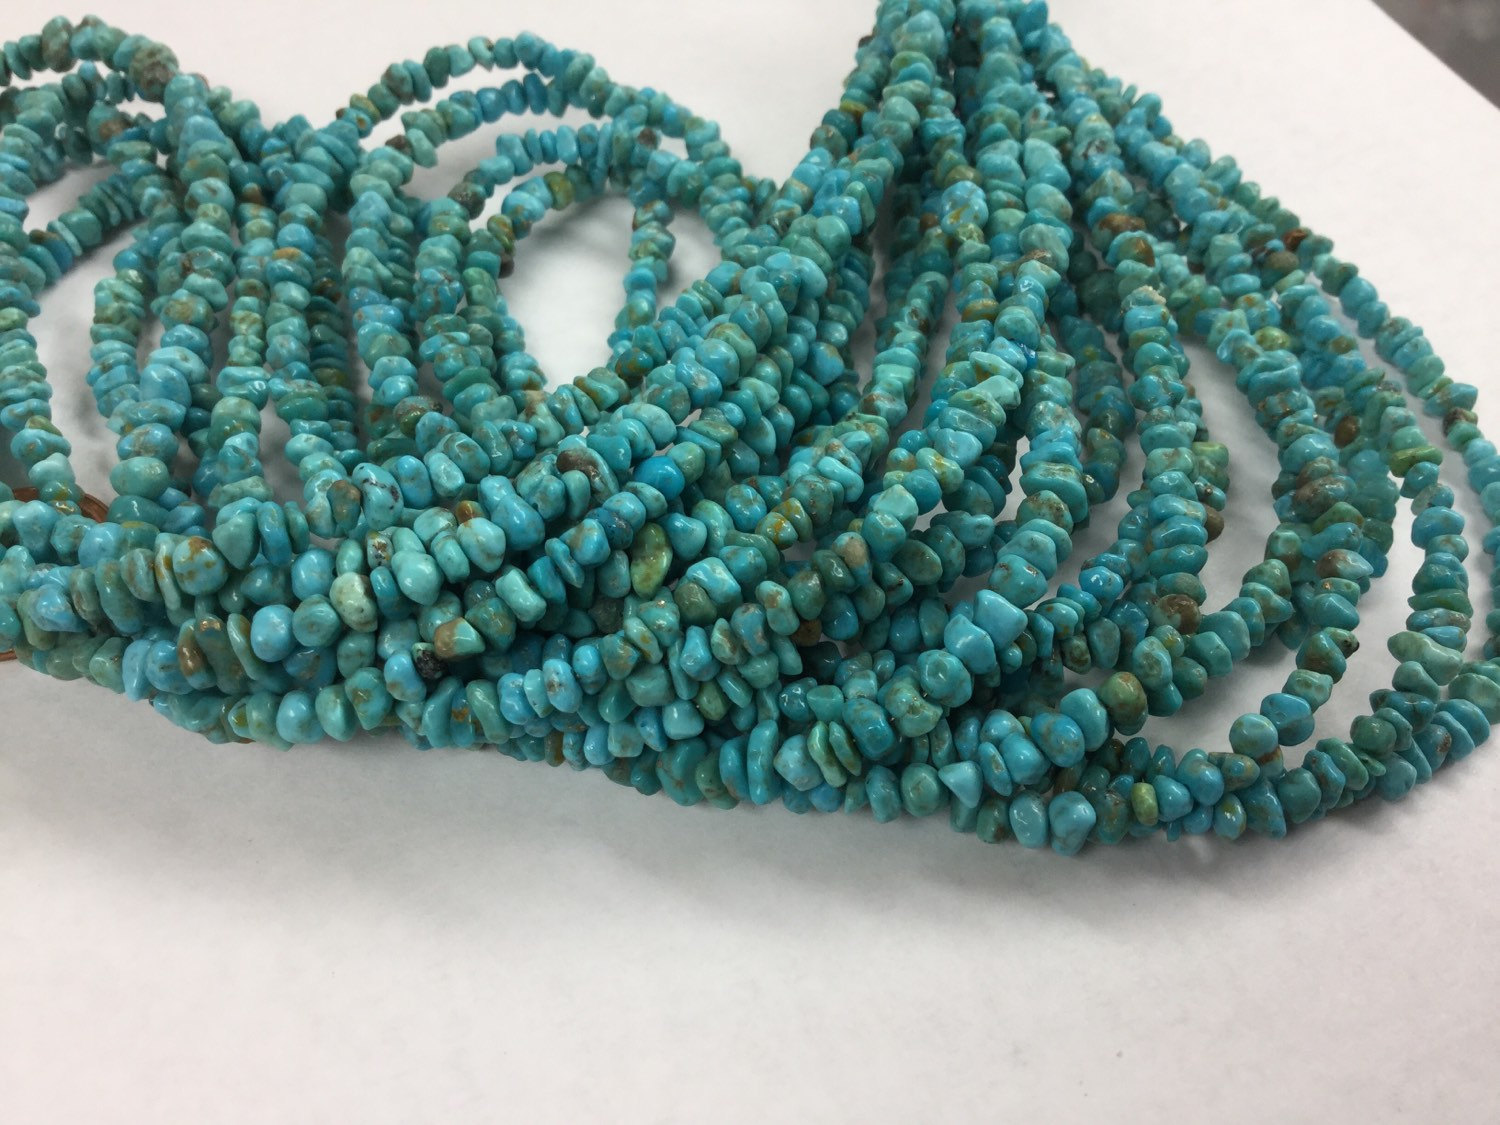 Natural Turquoise Blue Nuggets Smooth